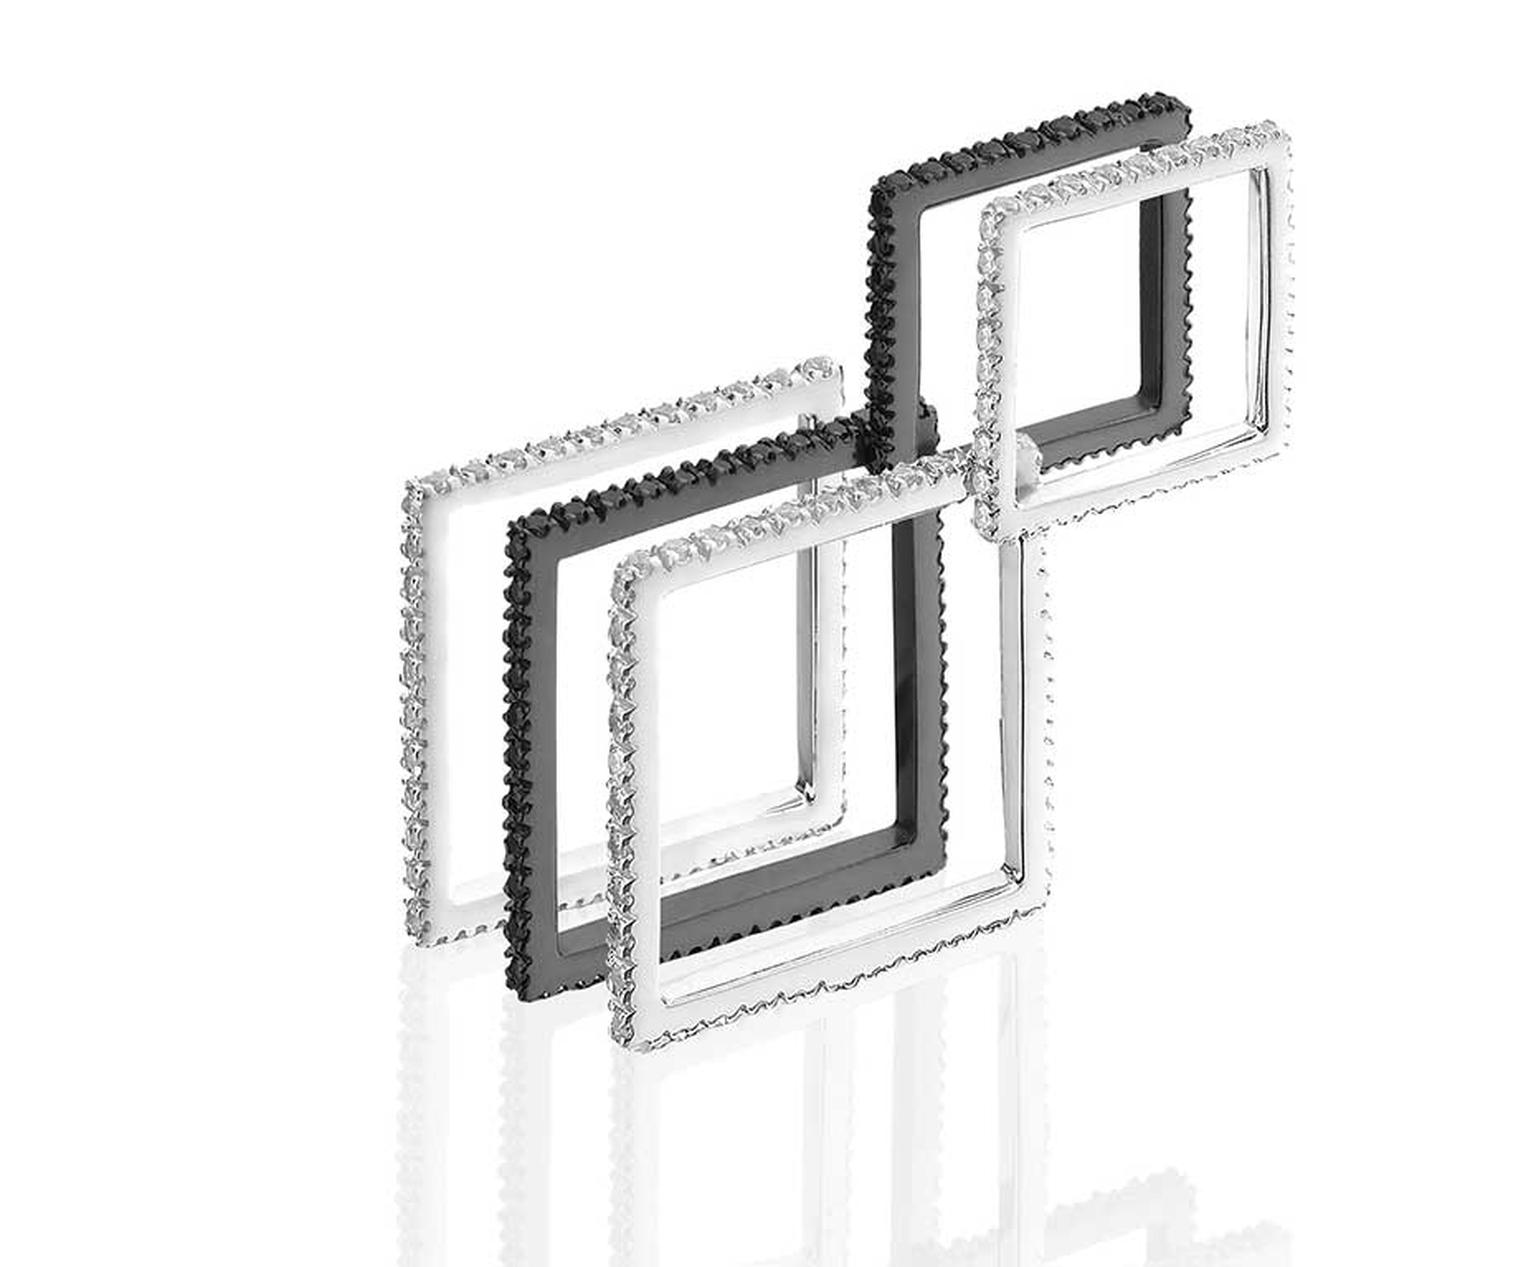 MyriamSOS Naked Square Double Square eternity rings in rhodium black silver with black spinels and white palladium gold with diamonds.